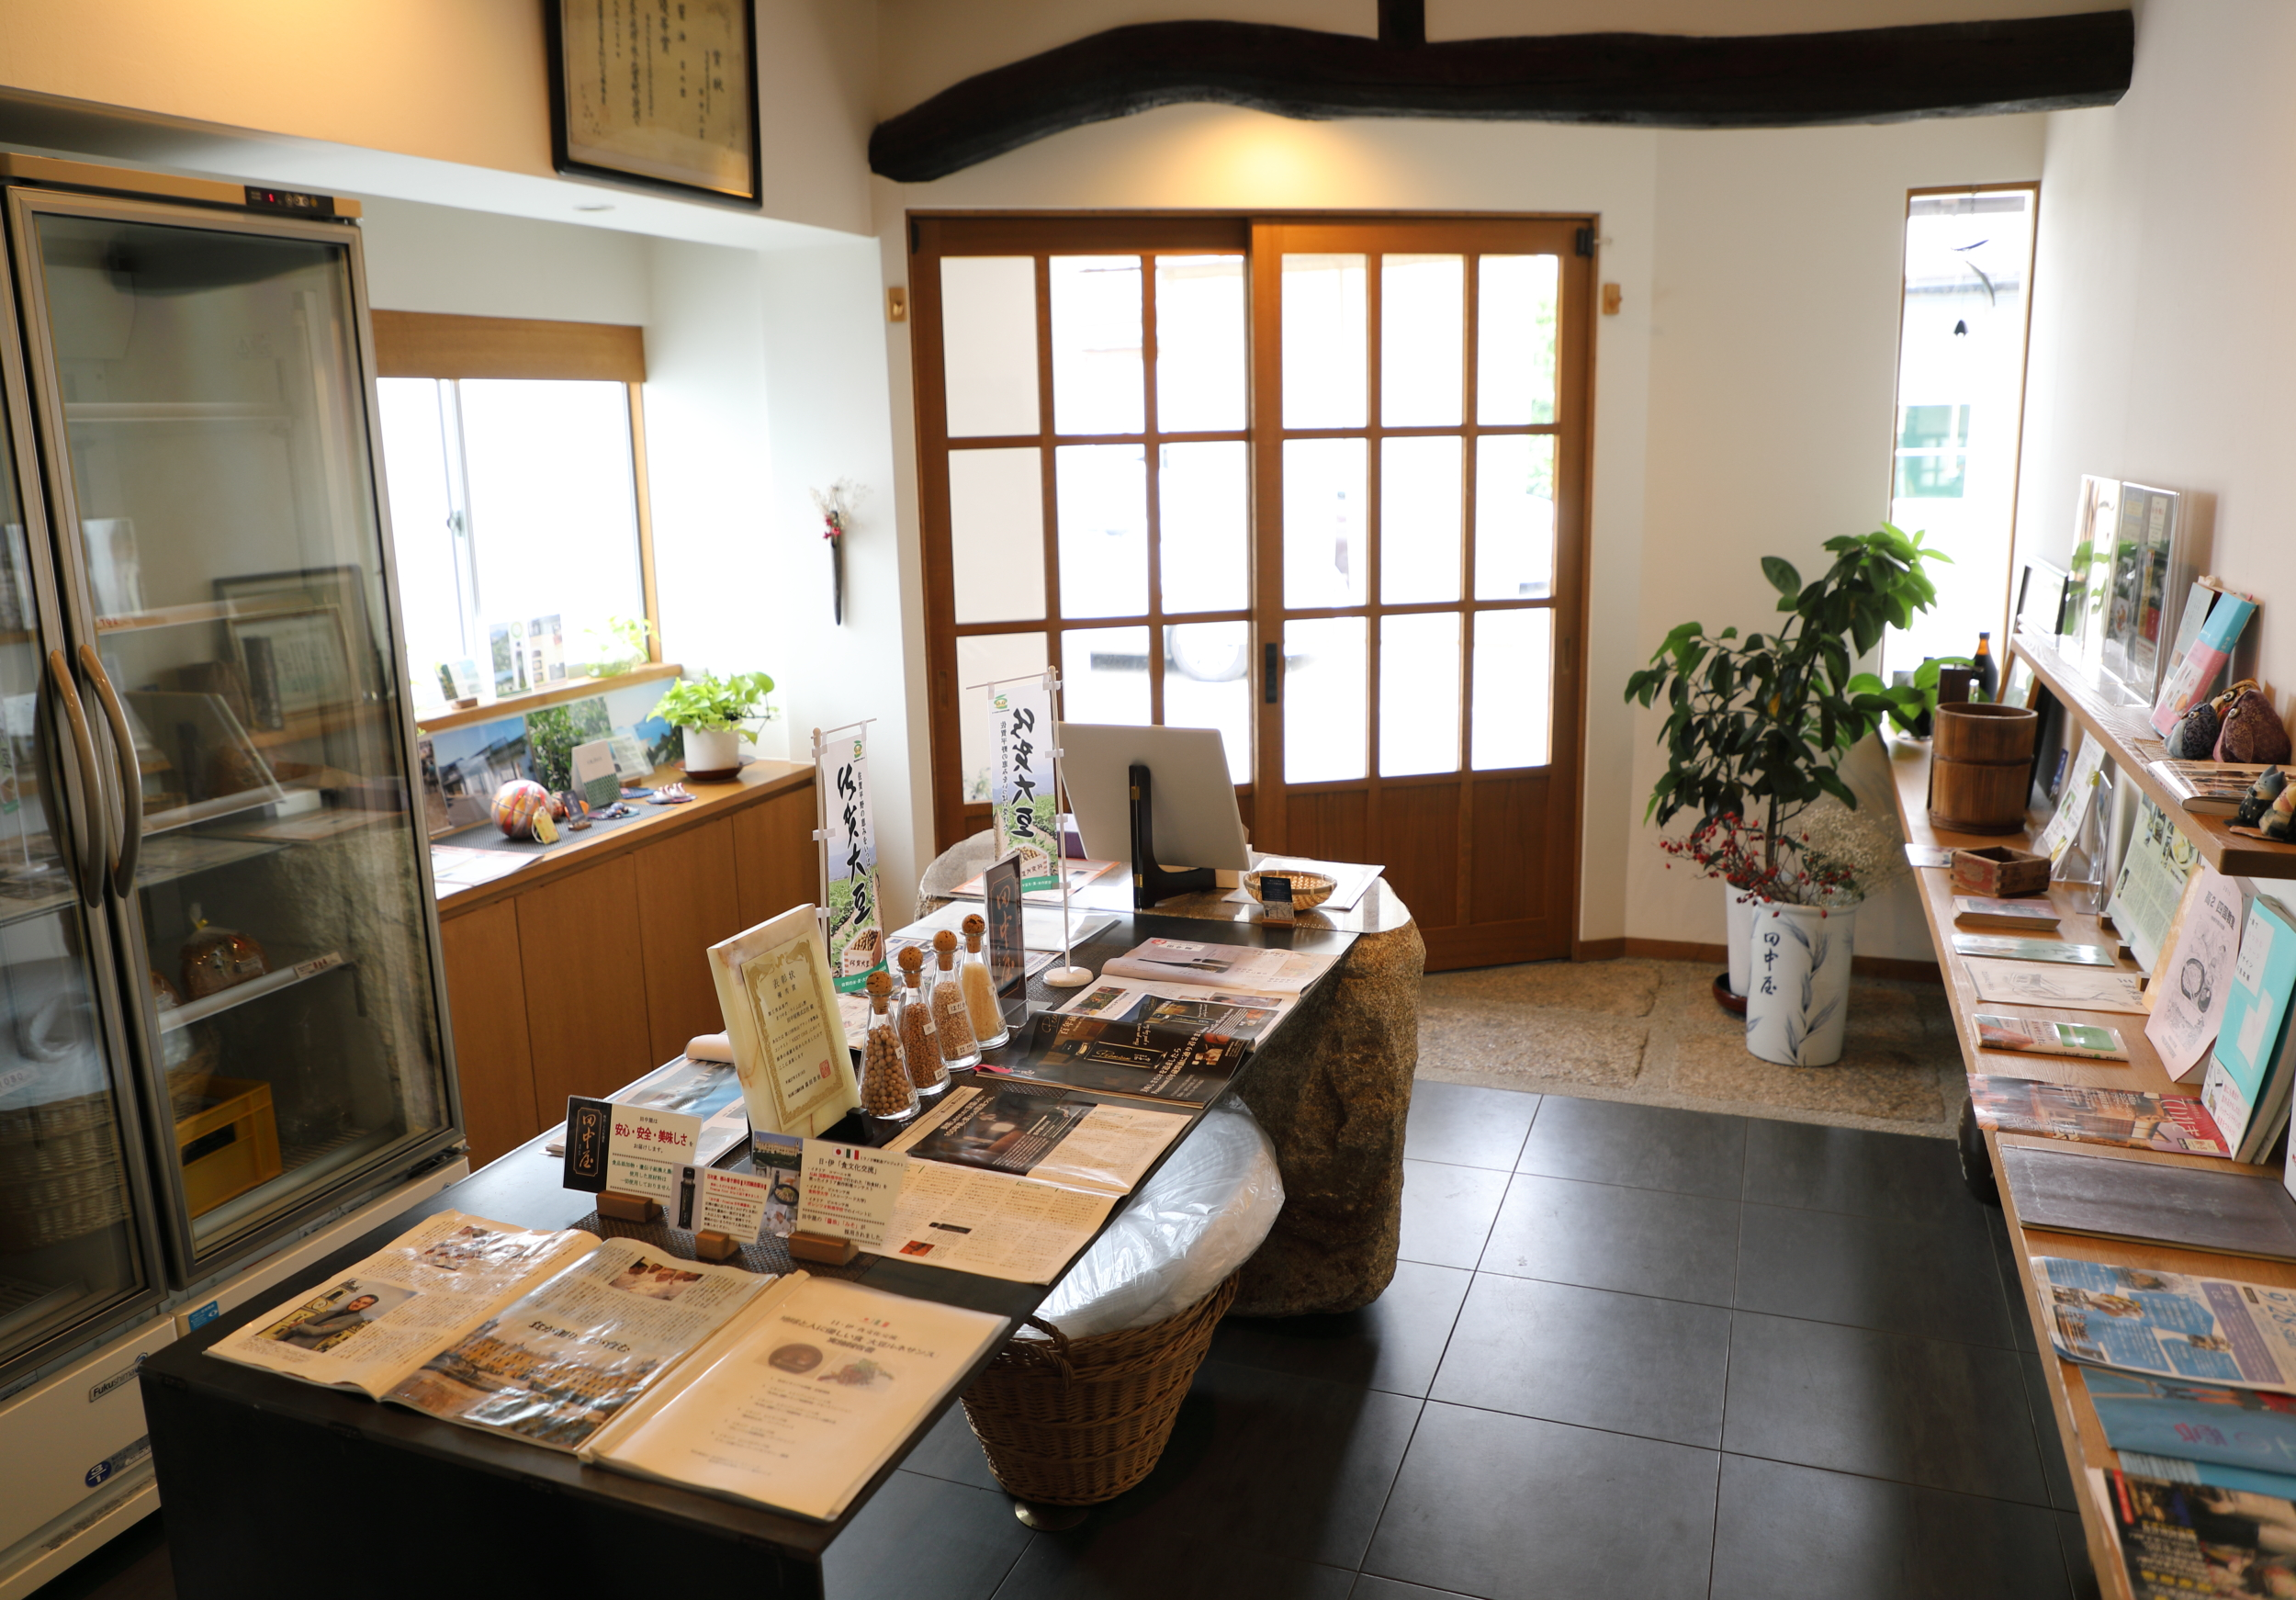 A shop just inside the entrance of the brewery, like this one at Tanakaya, is typical of artisanal soy sauce makers.